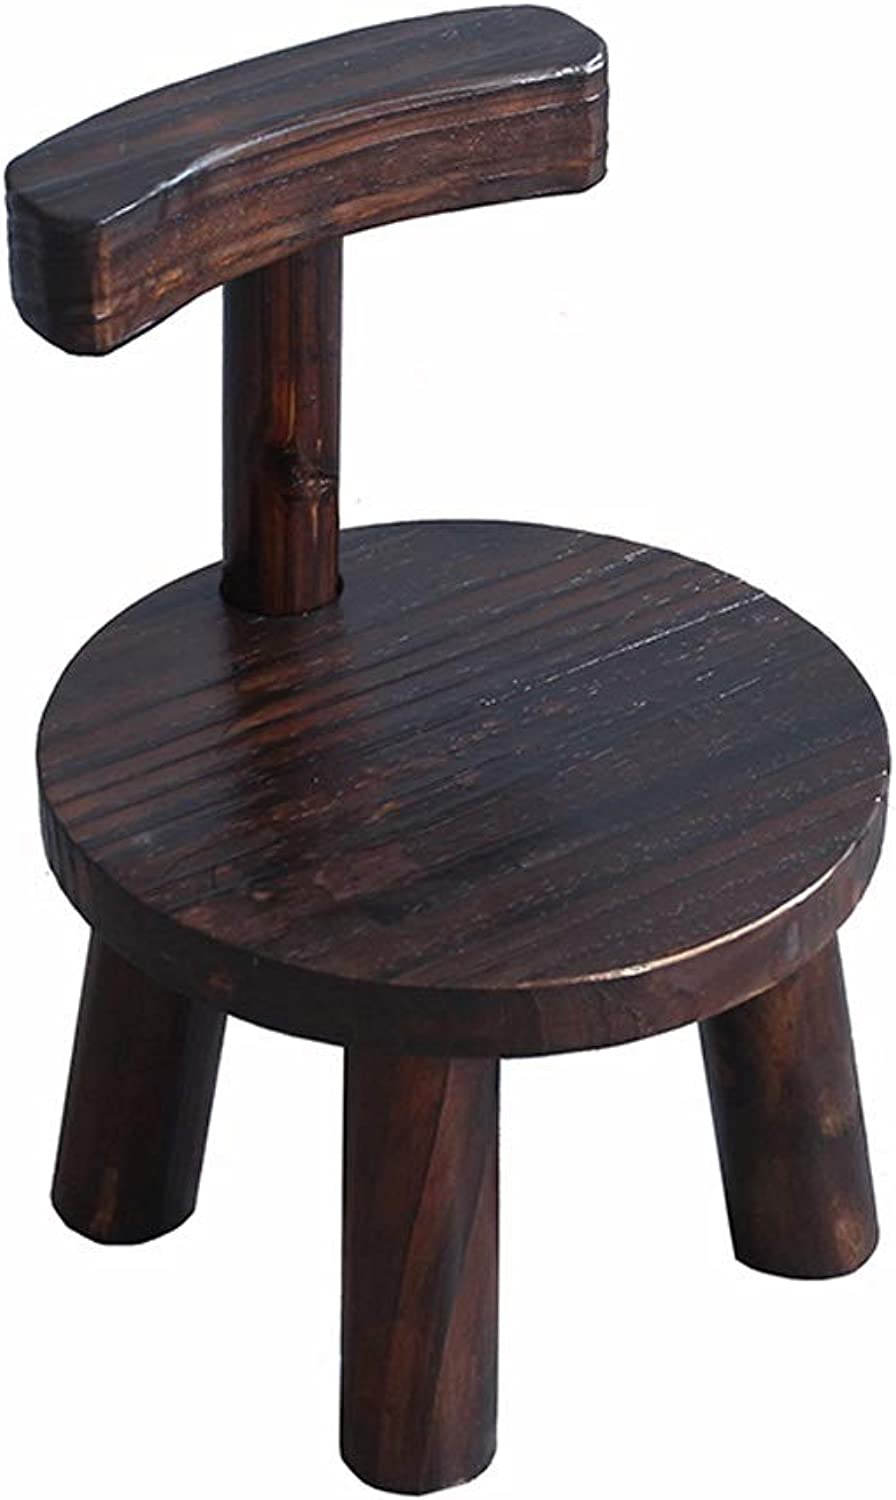 Lsxlsd Small Wooden Bench Small Bench Wood Stool Creative shoes Bench Living Room Coffee Table Stool Adult Stool Back Home Low Stool